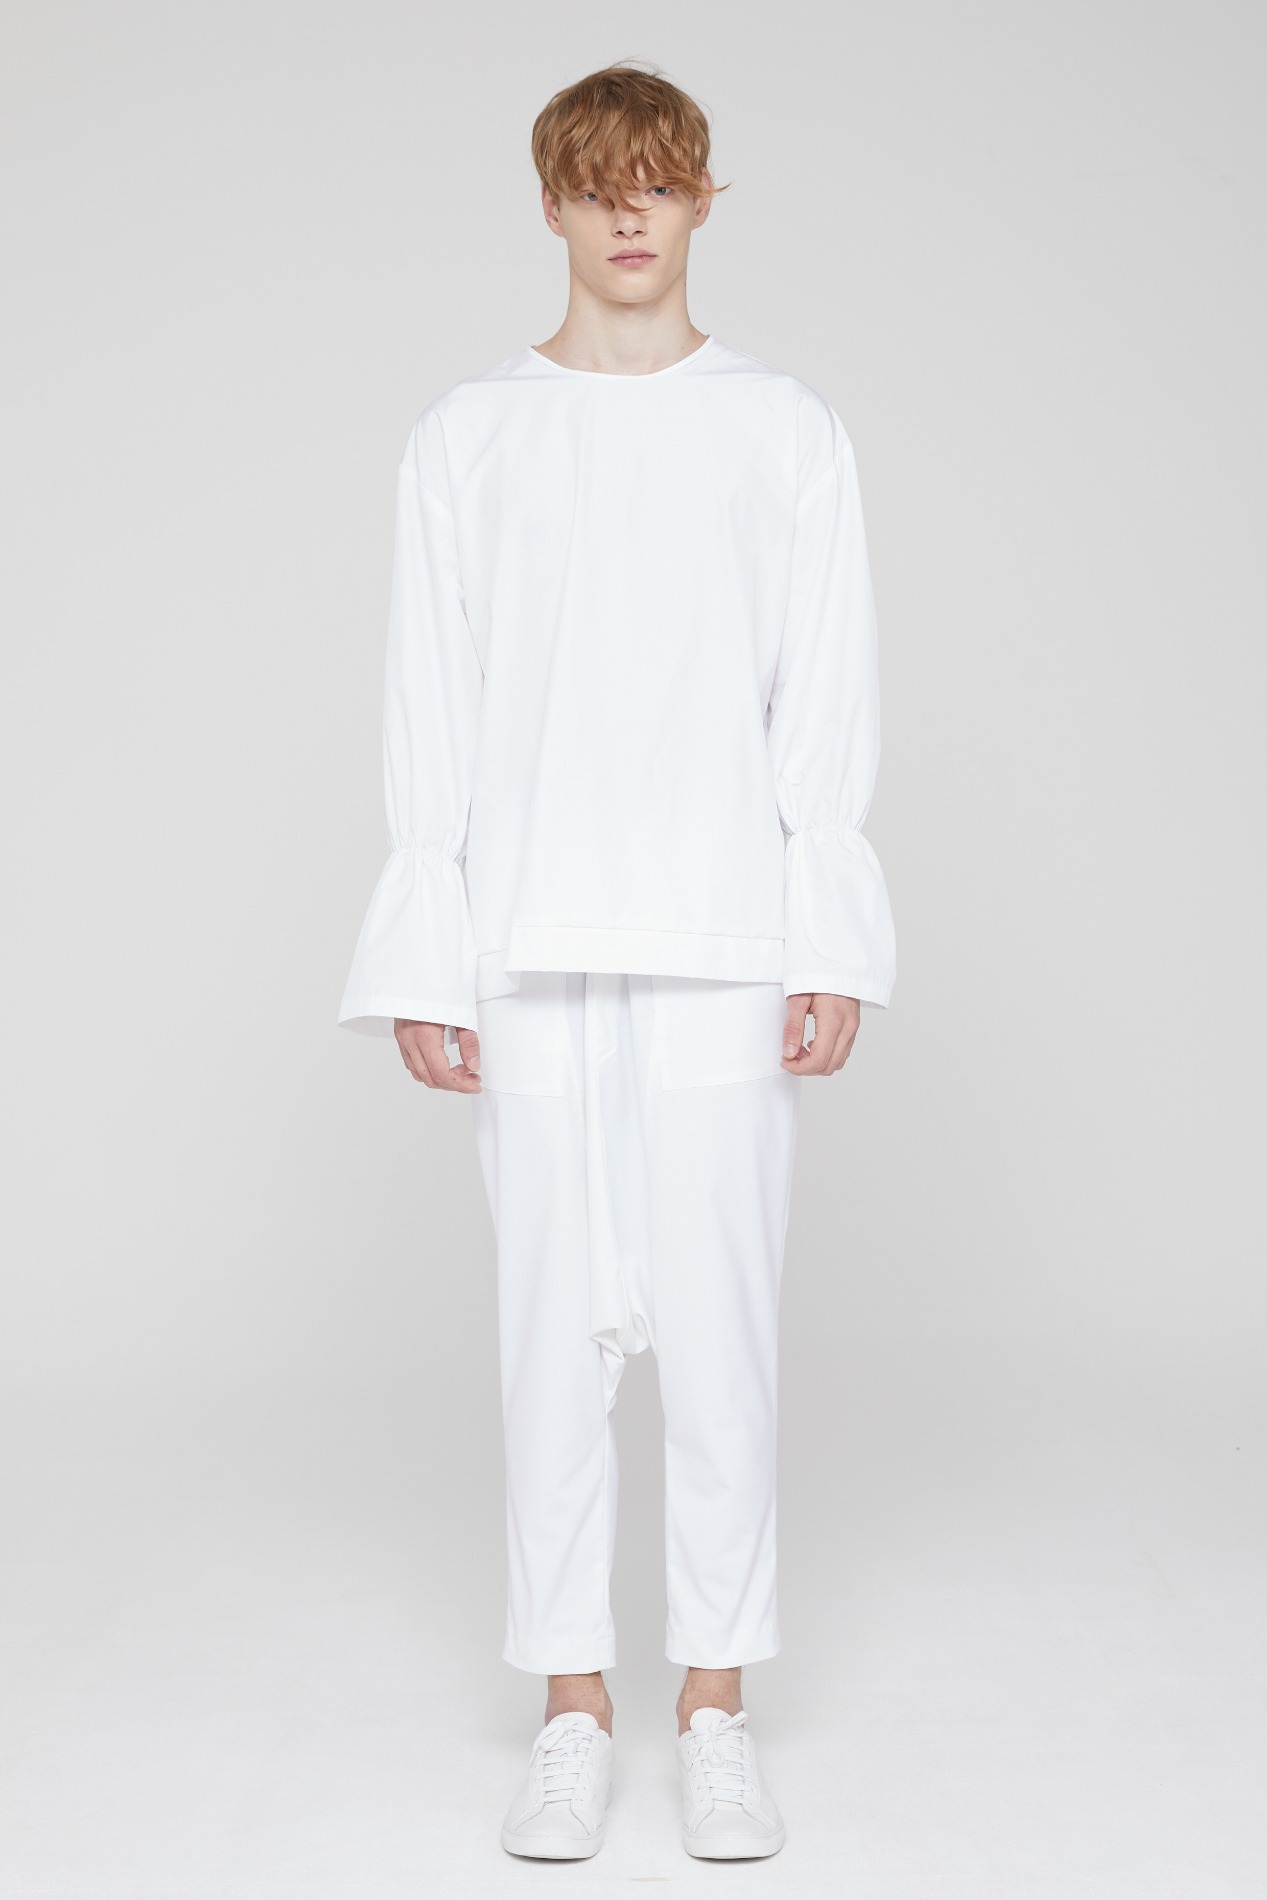 [ATELIER LINE] SHIRRING SLEEVE TOP (WHITE)